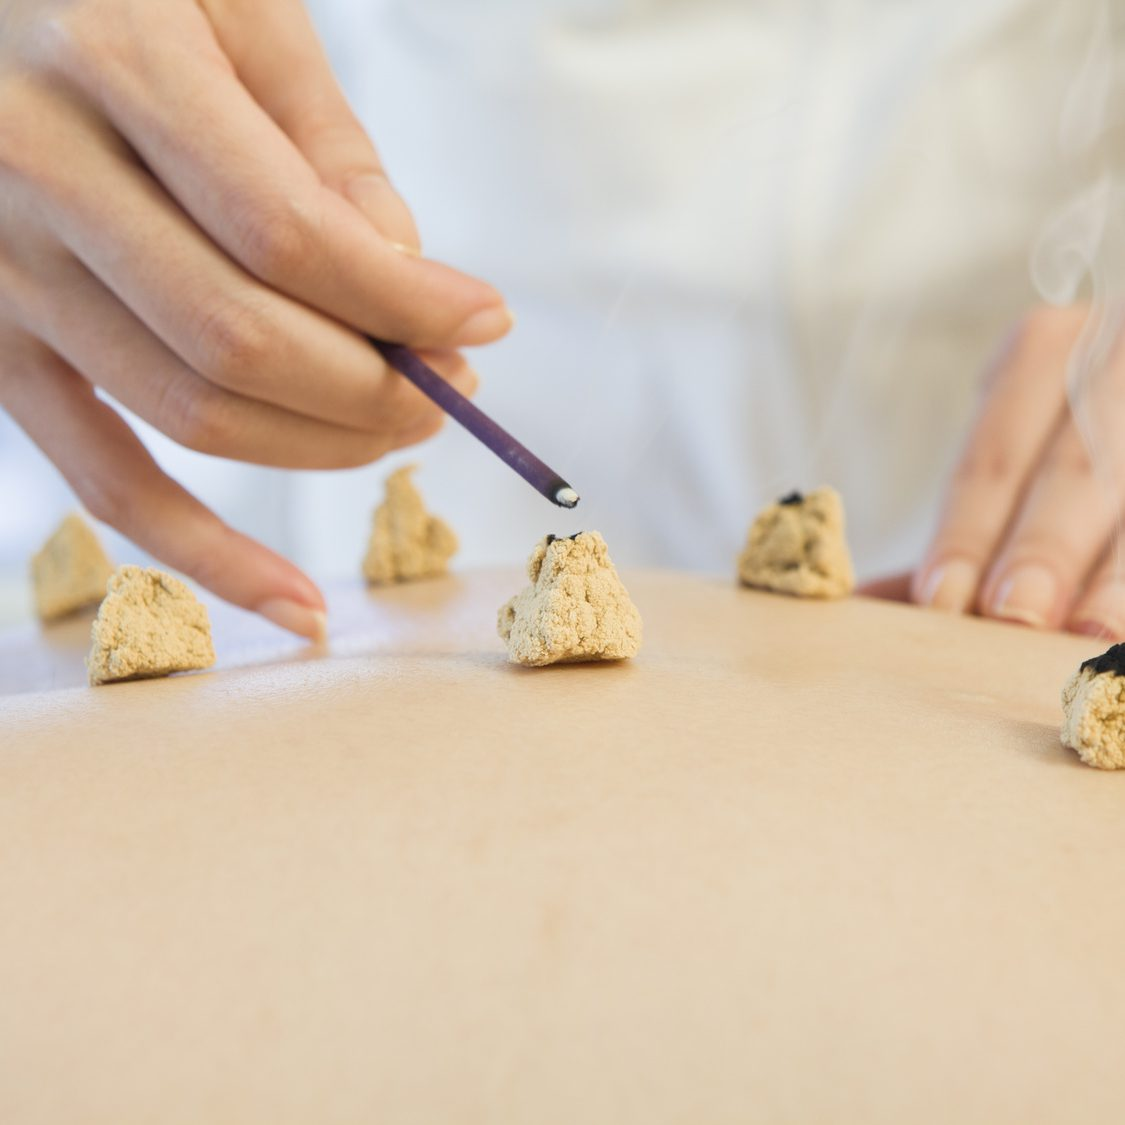 The state that instigates moxibustion